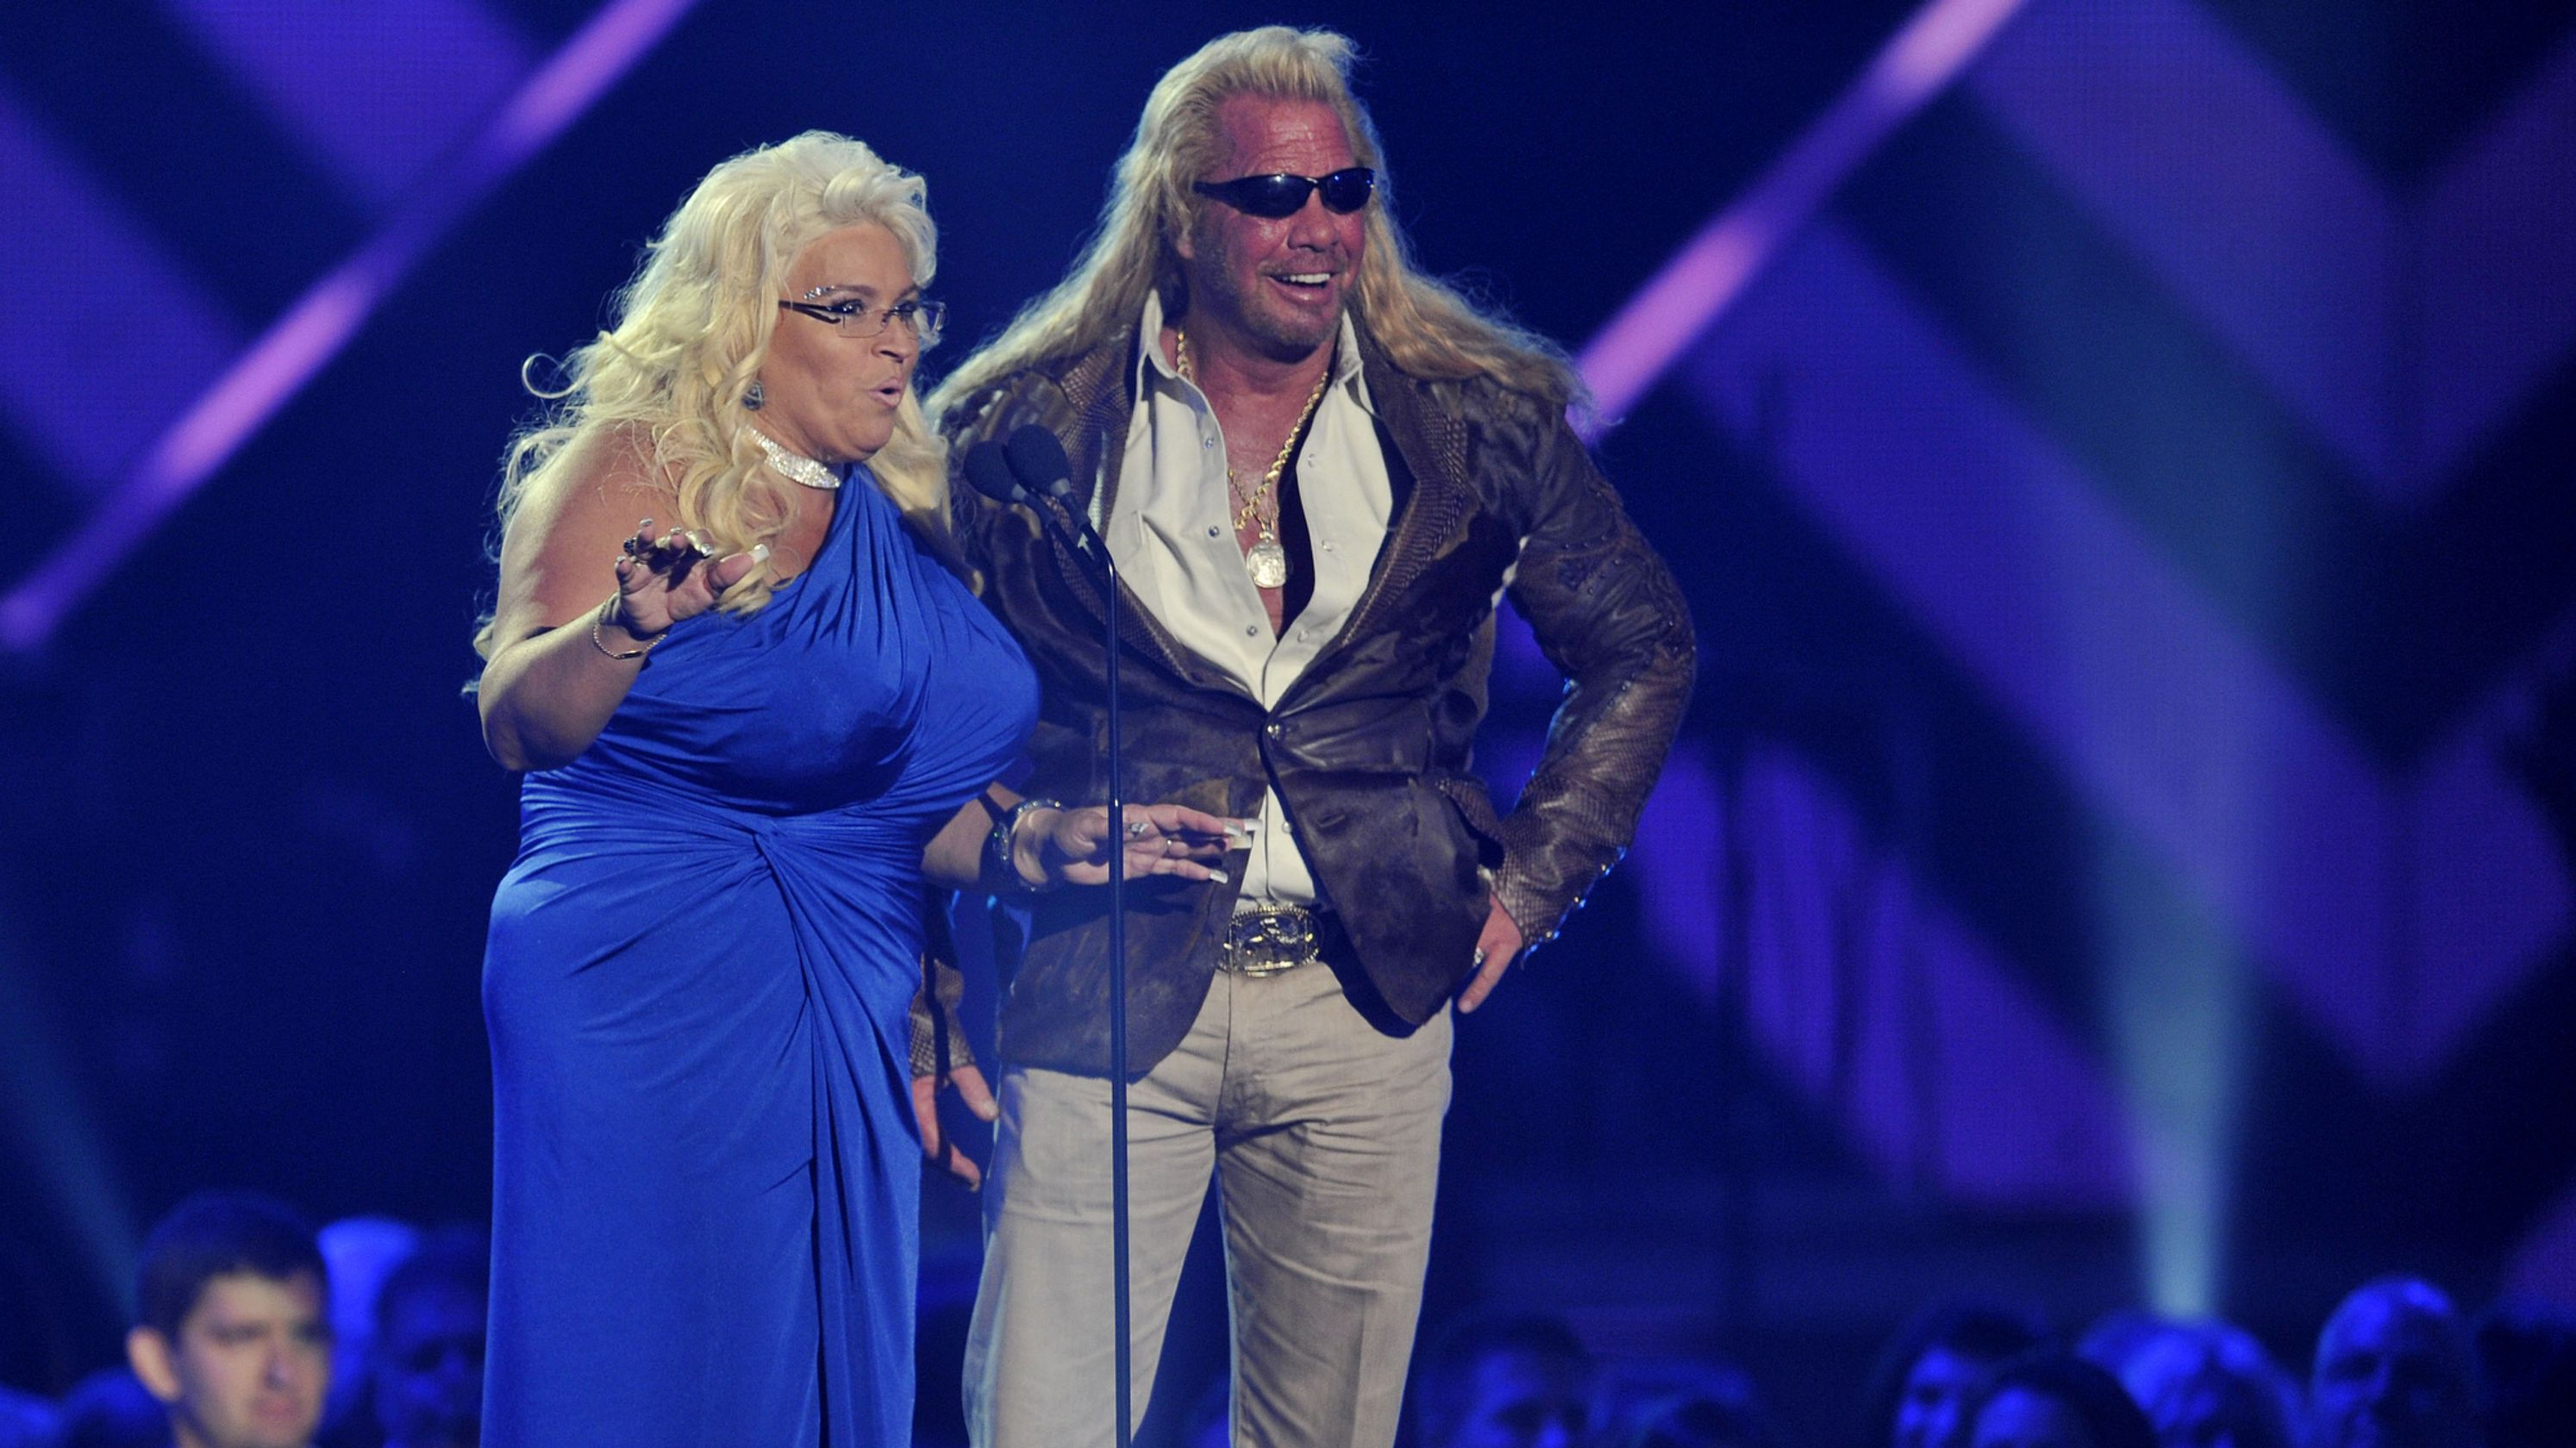 Wife of 'Dog the Bounty Hunter' returns home after tumor removal against doctor's advice